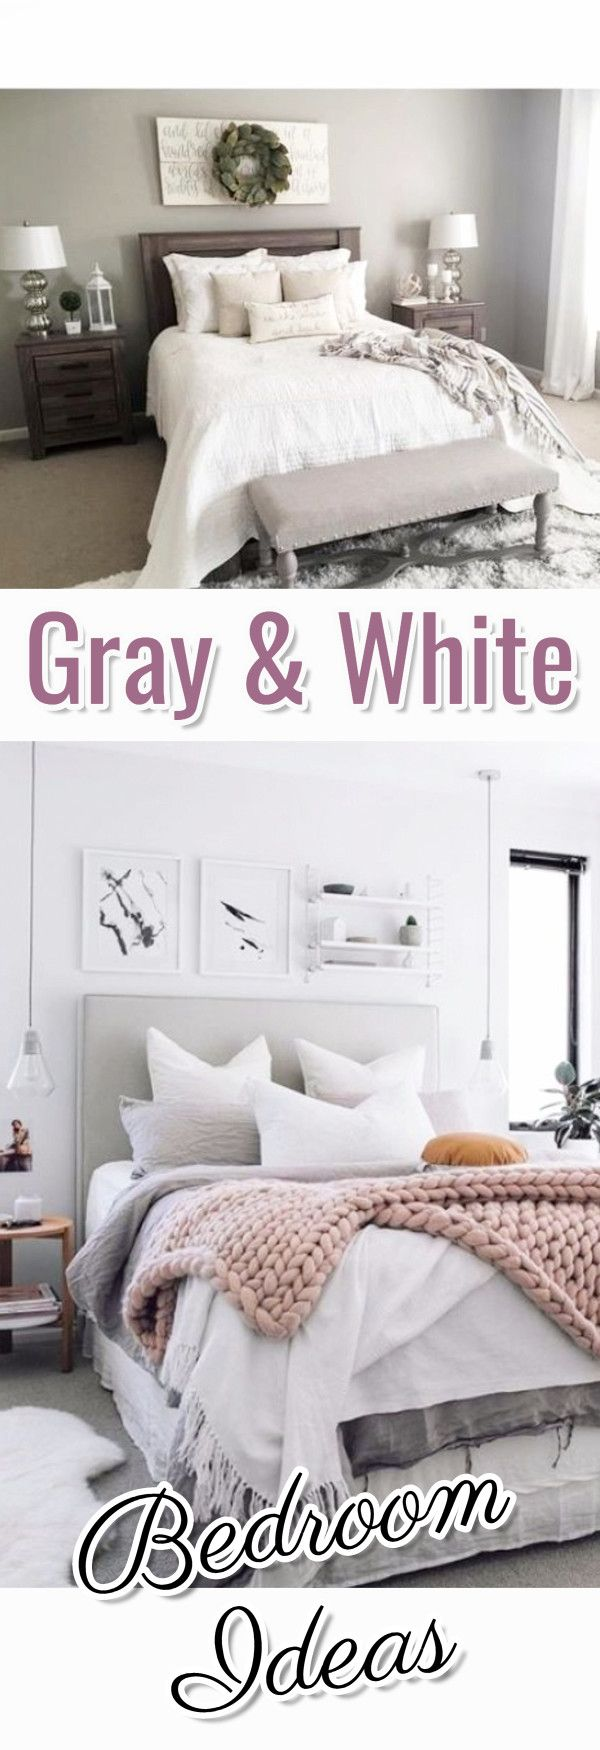 Bedroom Decorating Ideas and Inspiration #graybedroomwithpopofcolor